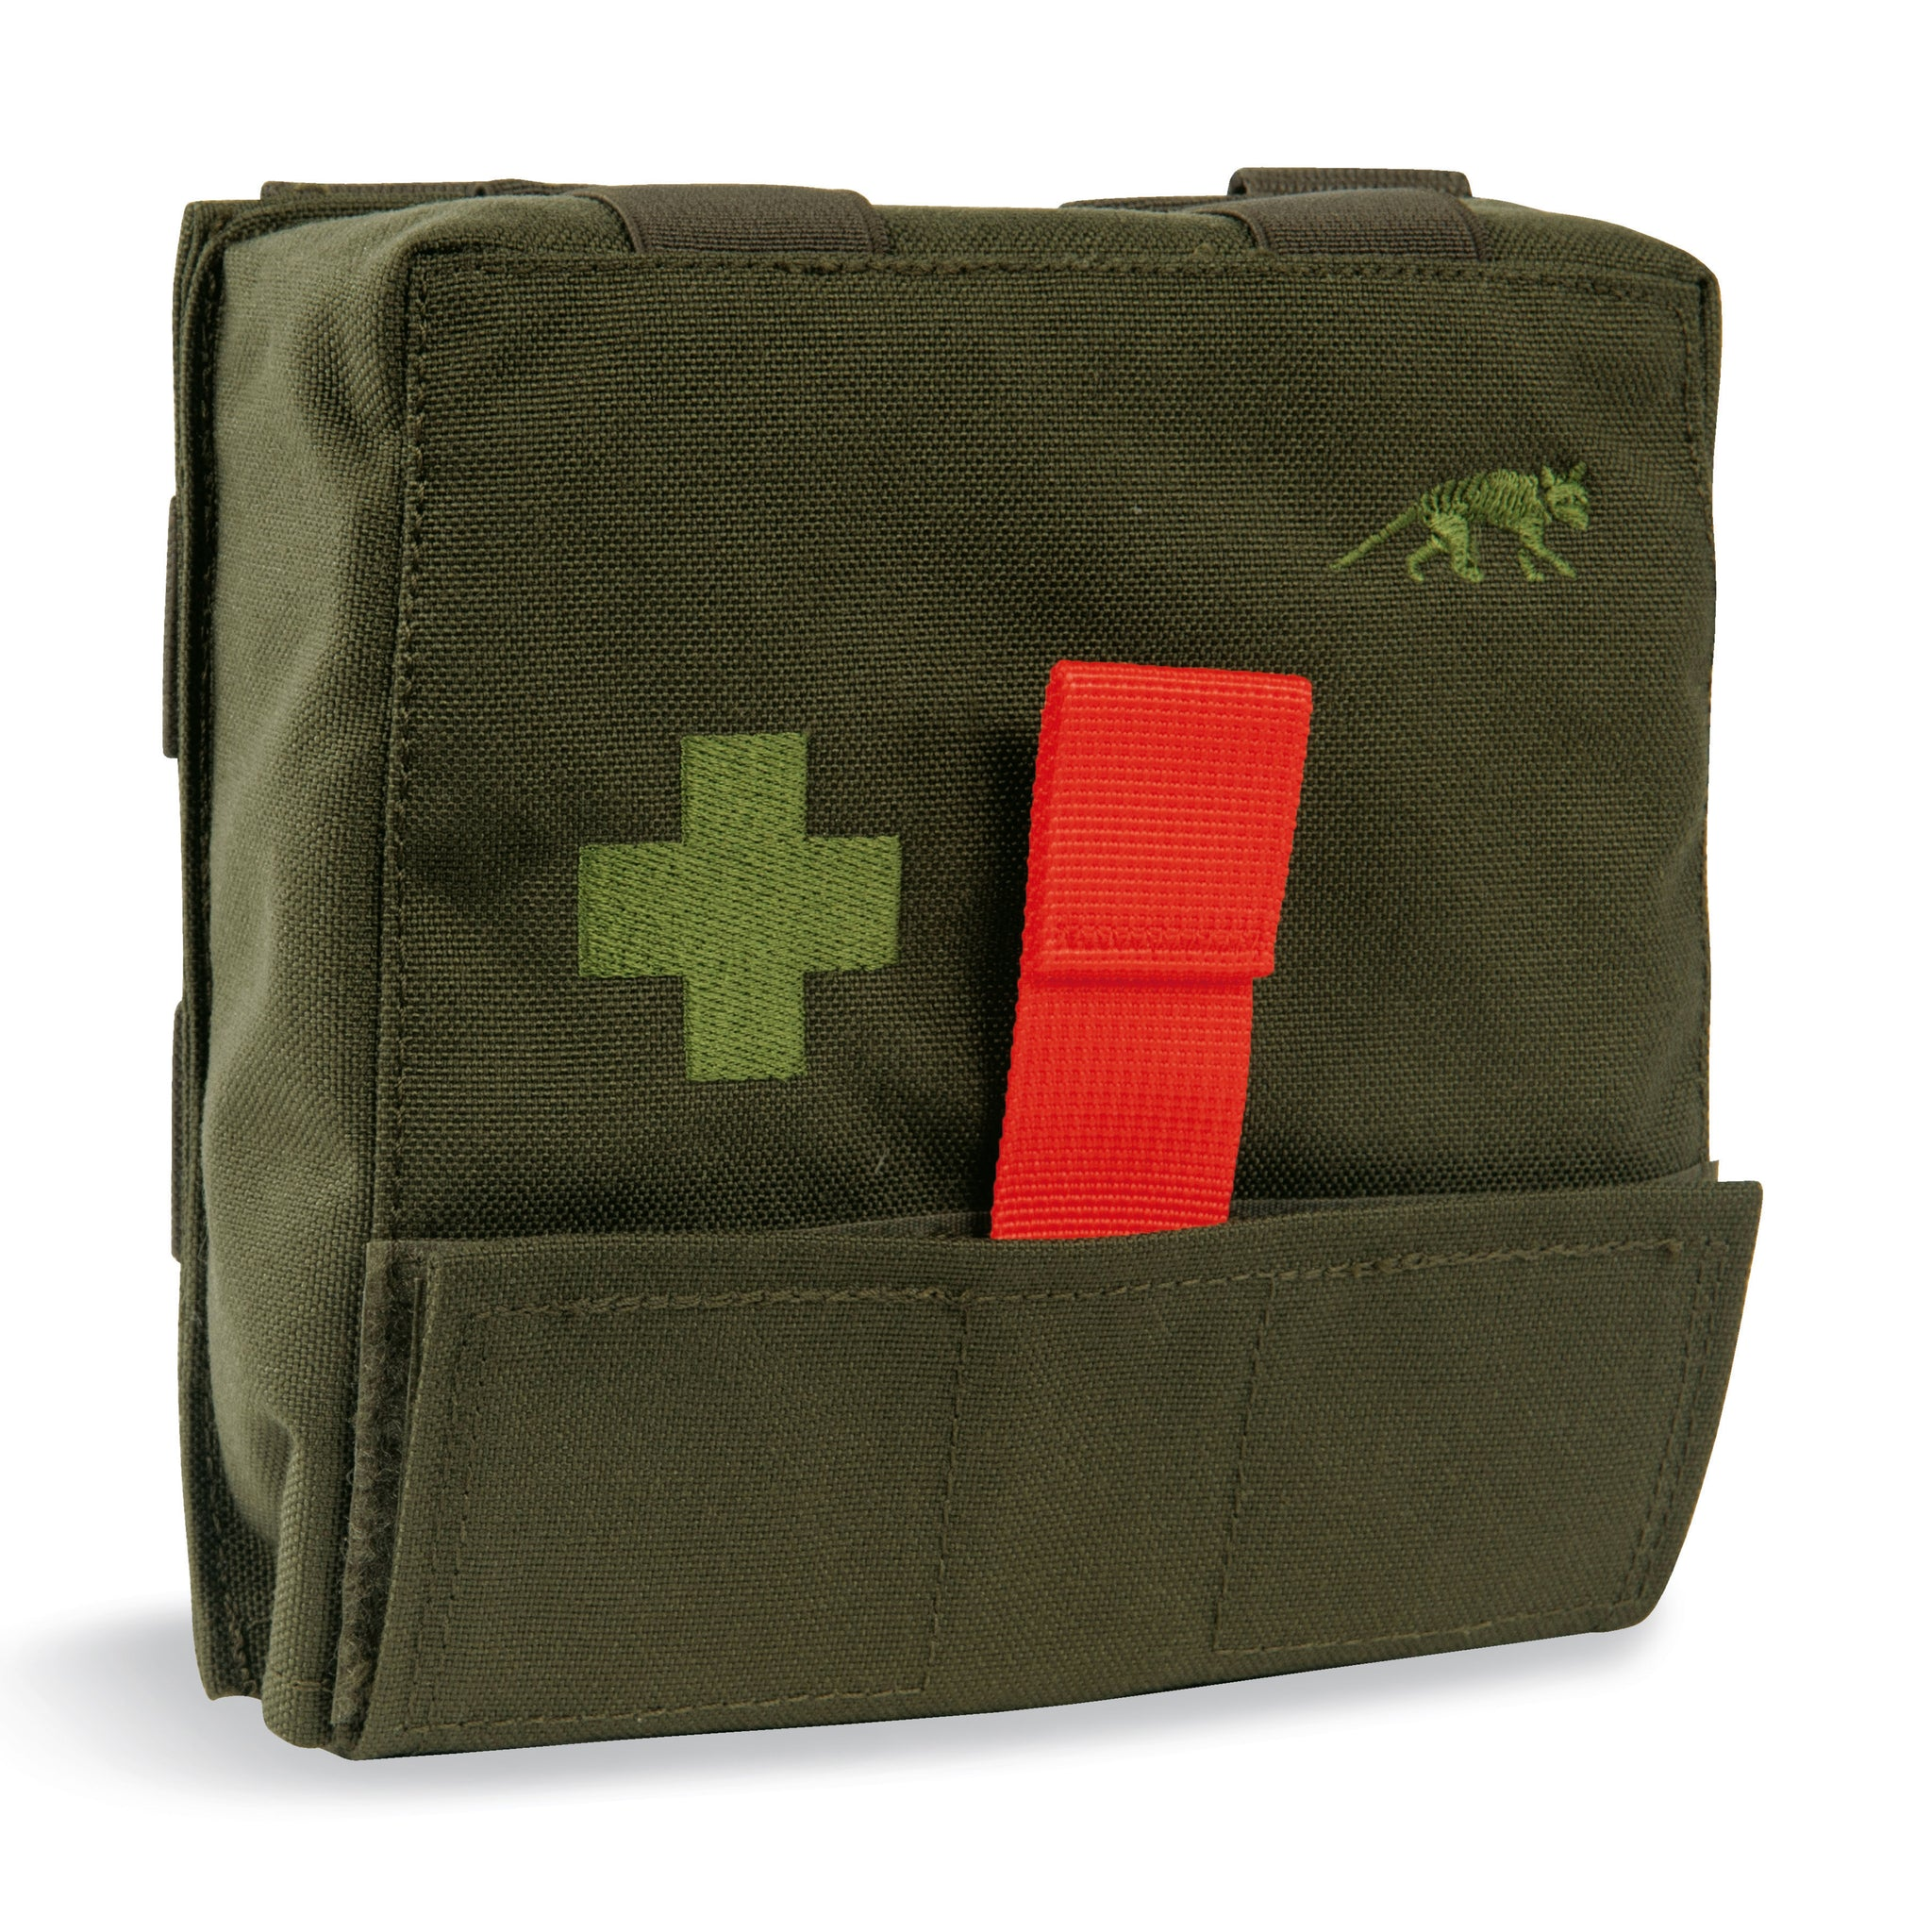 TT IFAK Pouch S - Texas Adventure and Survival